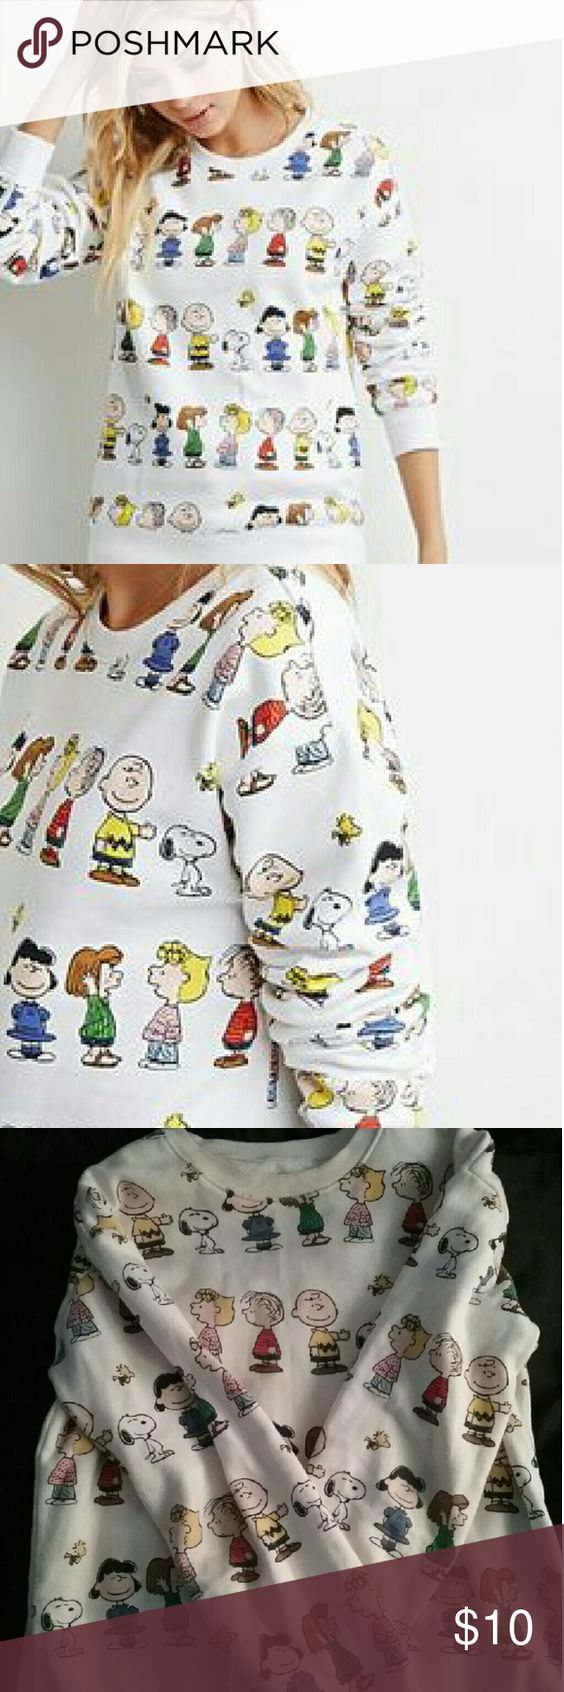 Forever 21 Charlie Brown sweatshirt Sweatshirt with all over Charlie Brown print from Forever 21 in a size medium. It's a little dingy on the collar but still a cute sweatshirt. Doesn't really fit anymore. Forever 21 Tops Sweatshirts & Hoodies